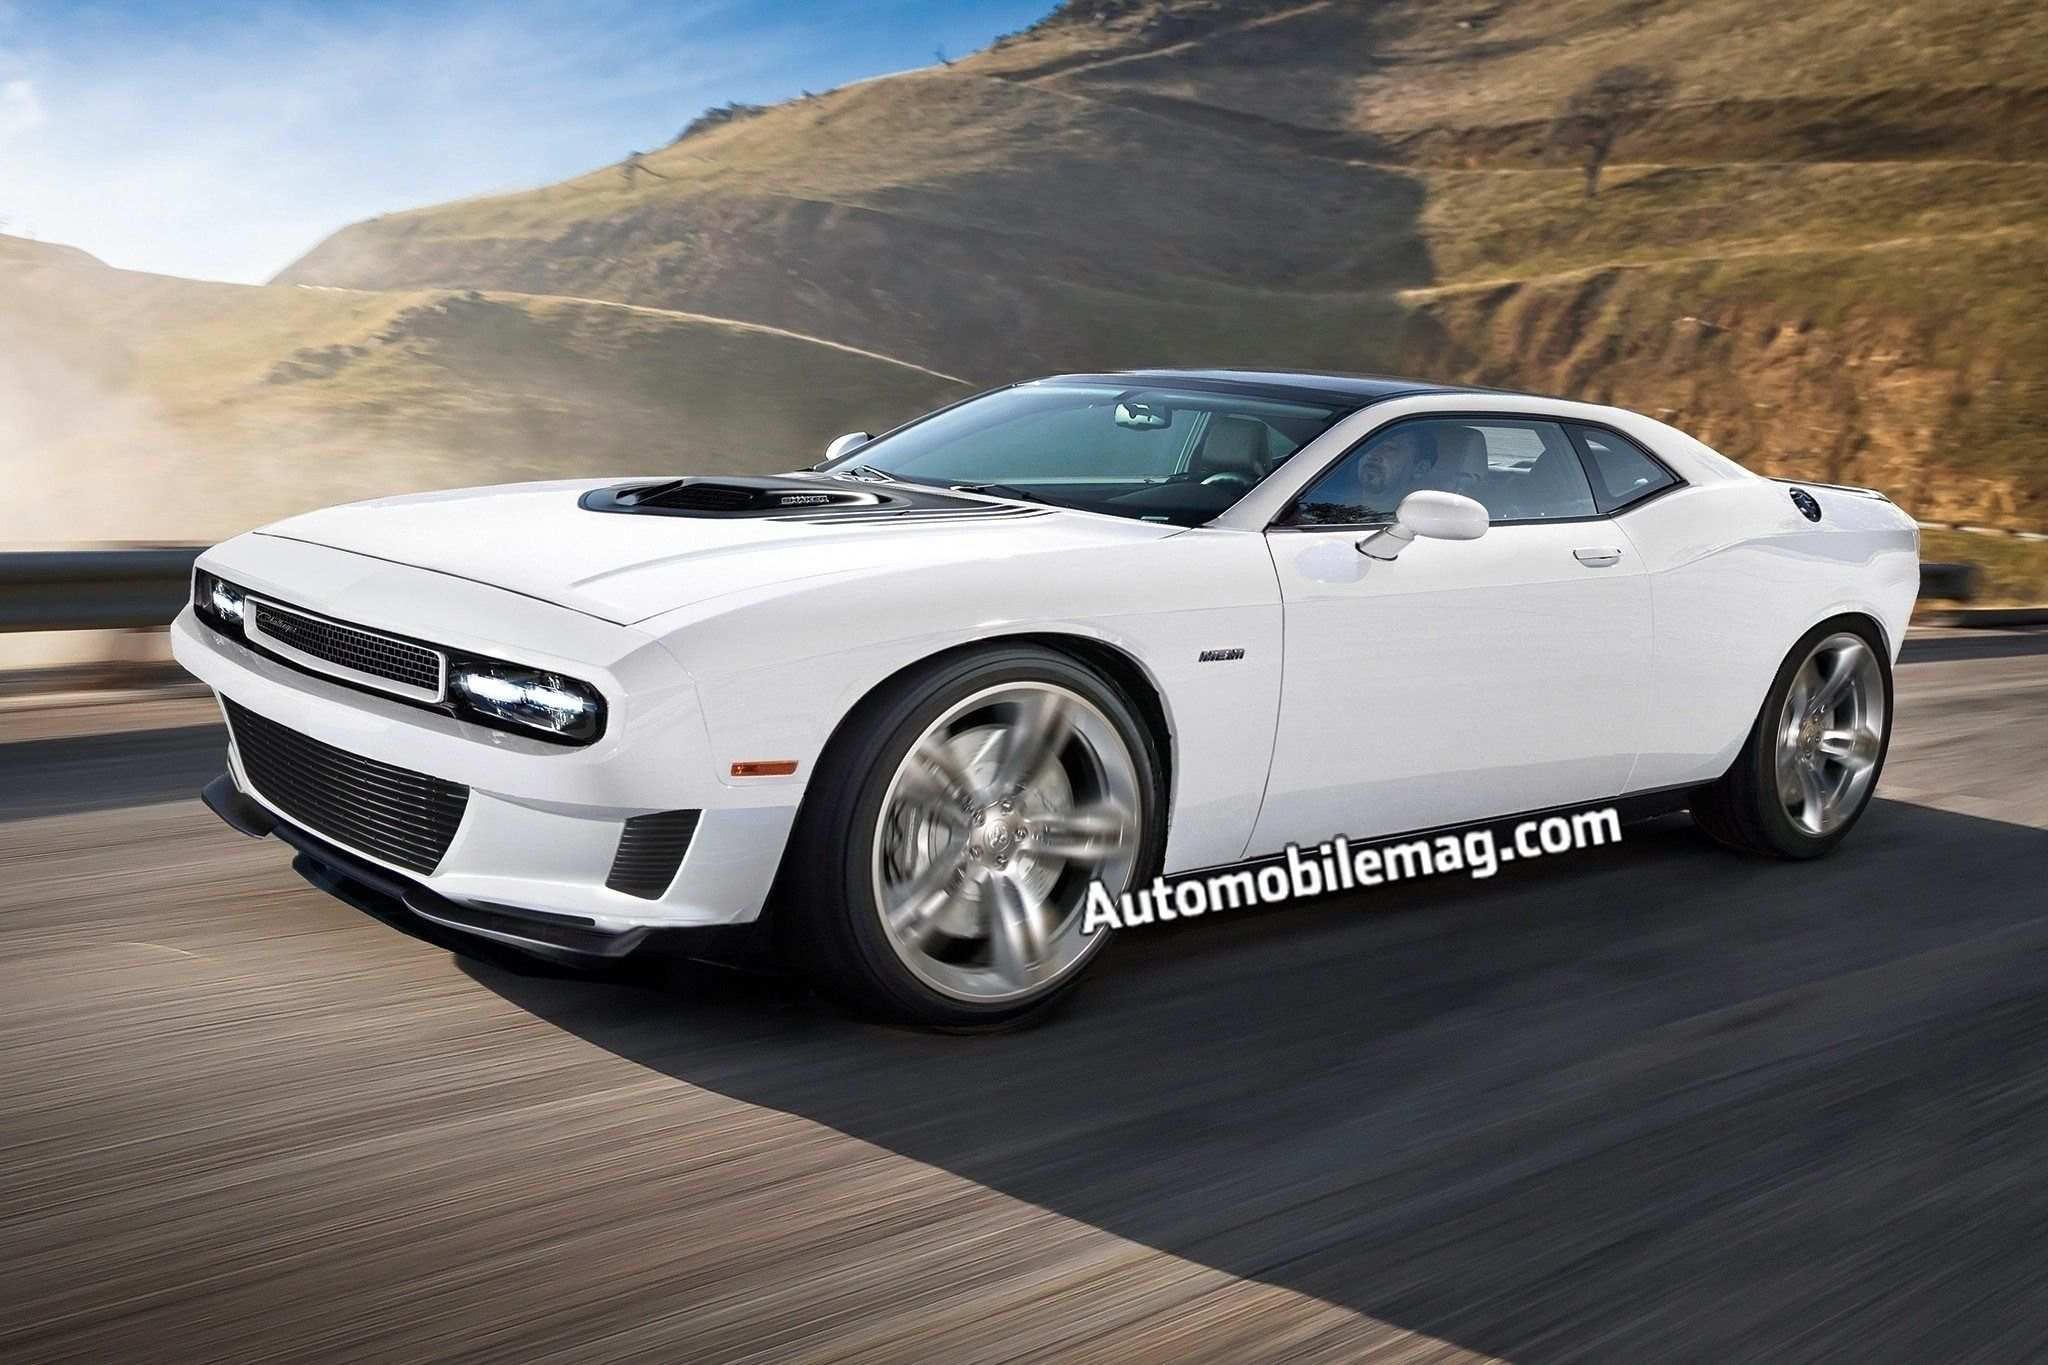 14 Concept of 2020 Dodge Challenger Release Date with 2020 Dodge Challenger